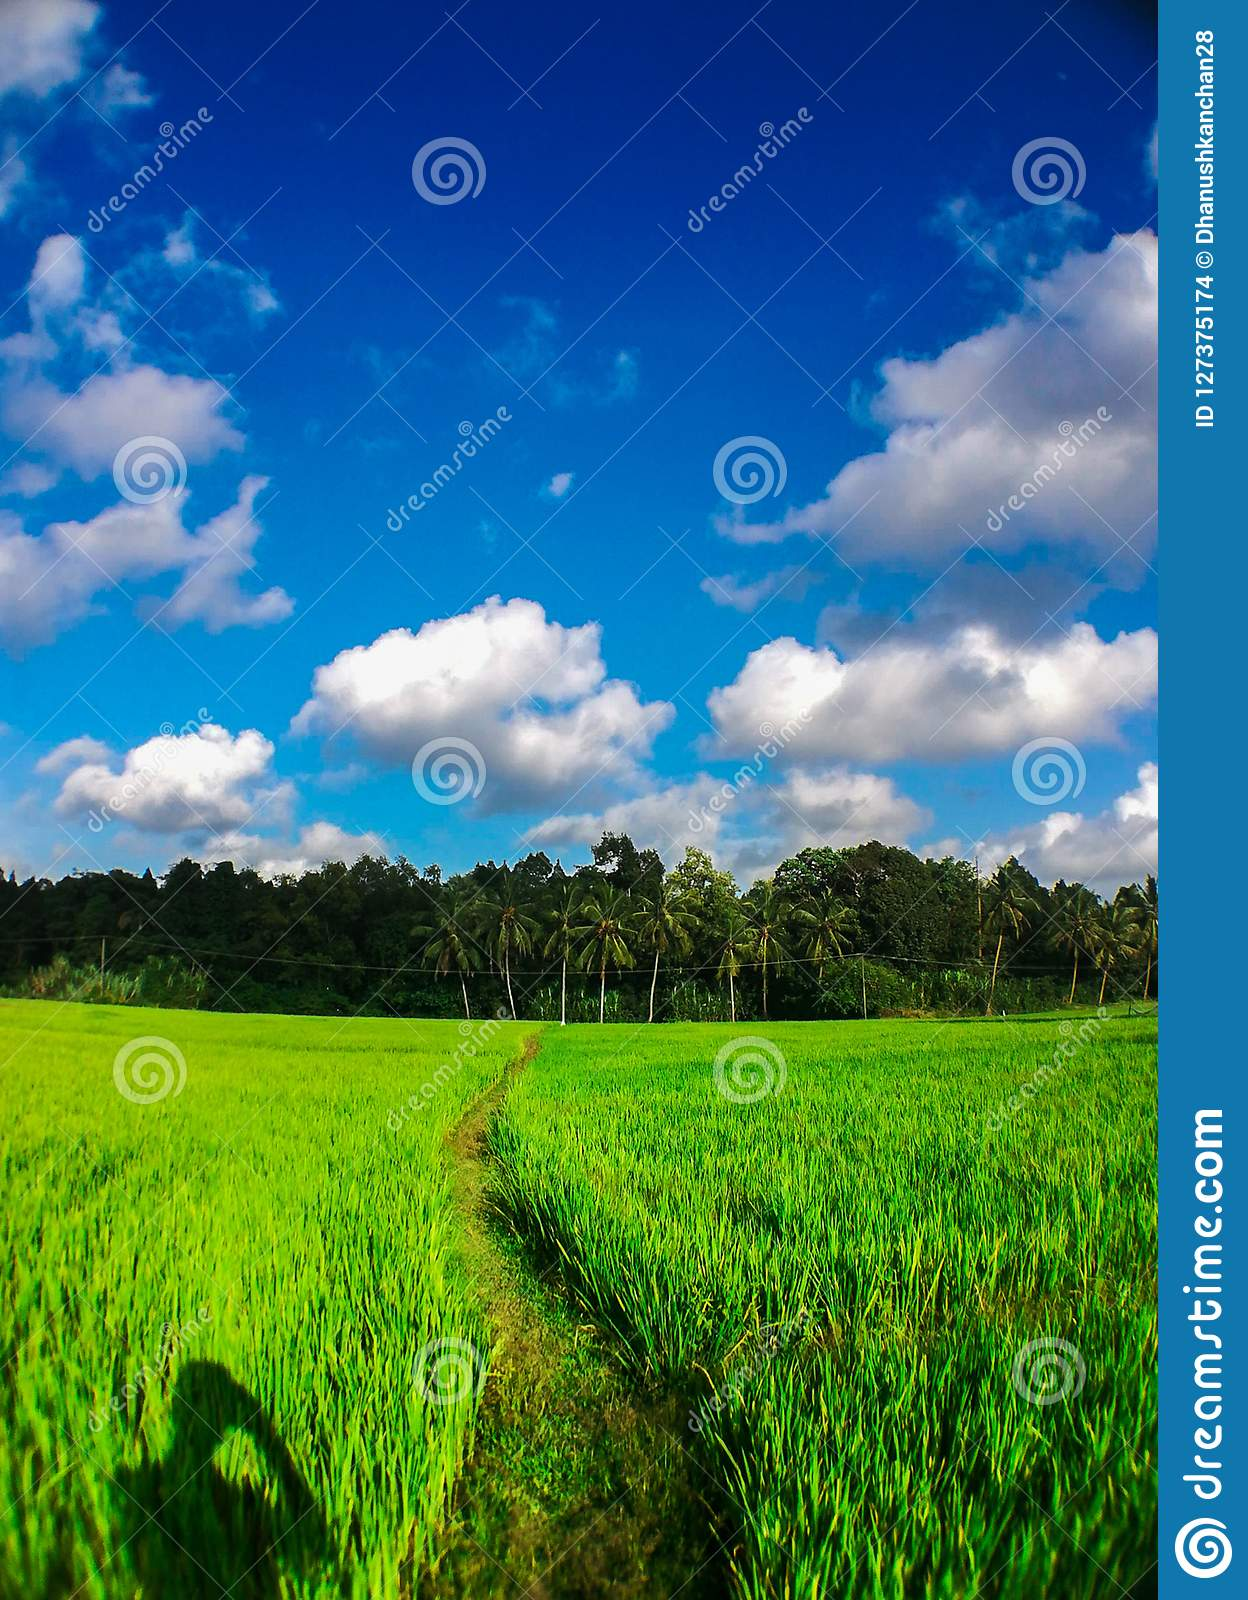 Alone boy shadow in those colourful green field the path to those blue cloudy sky